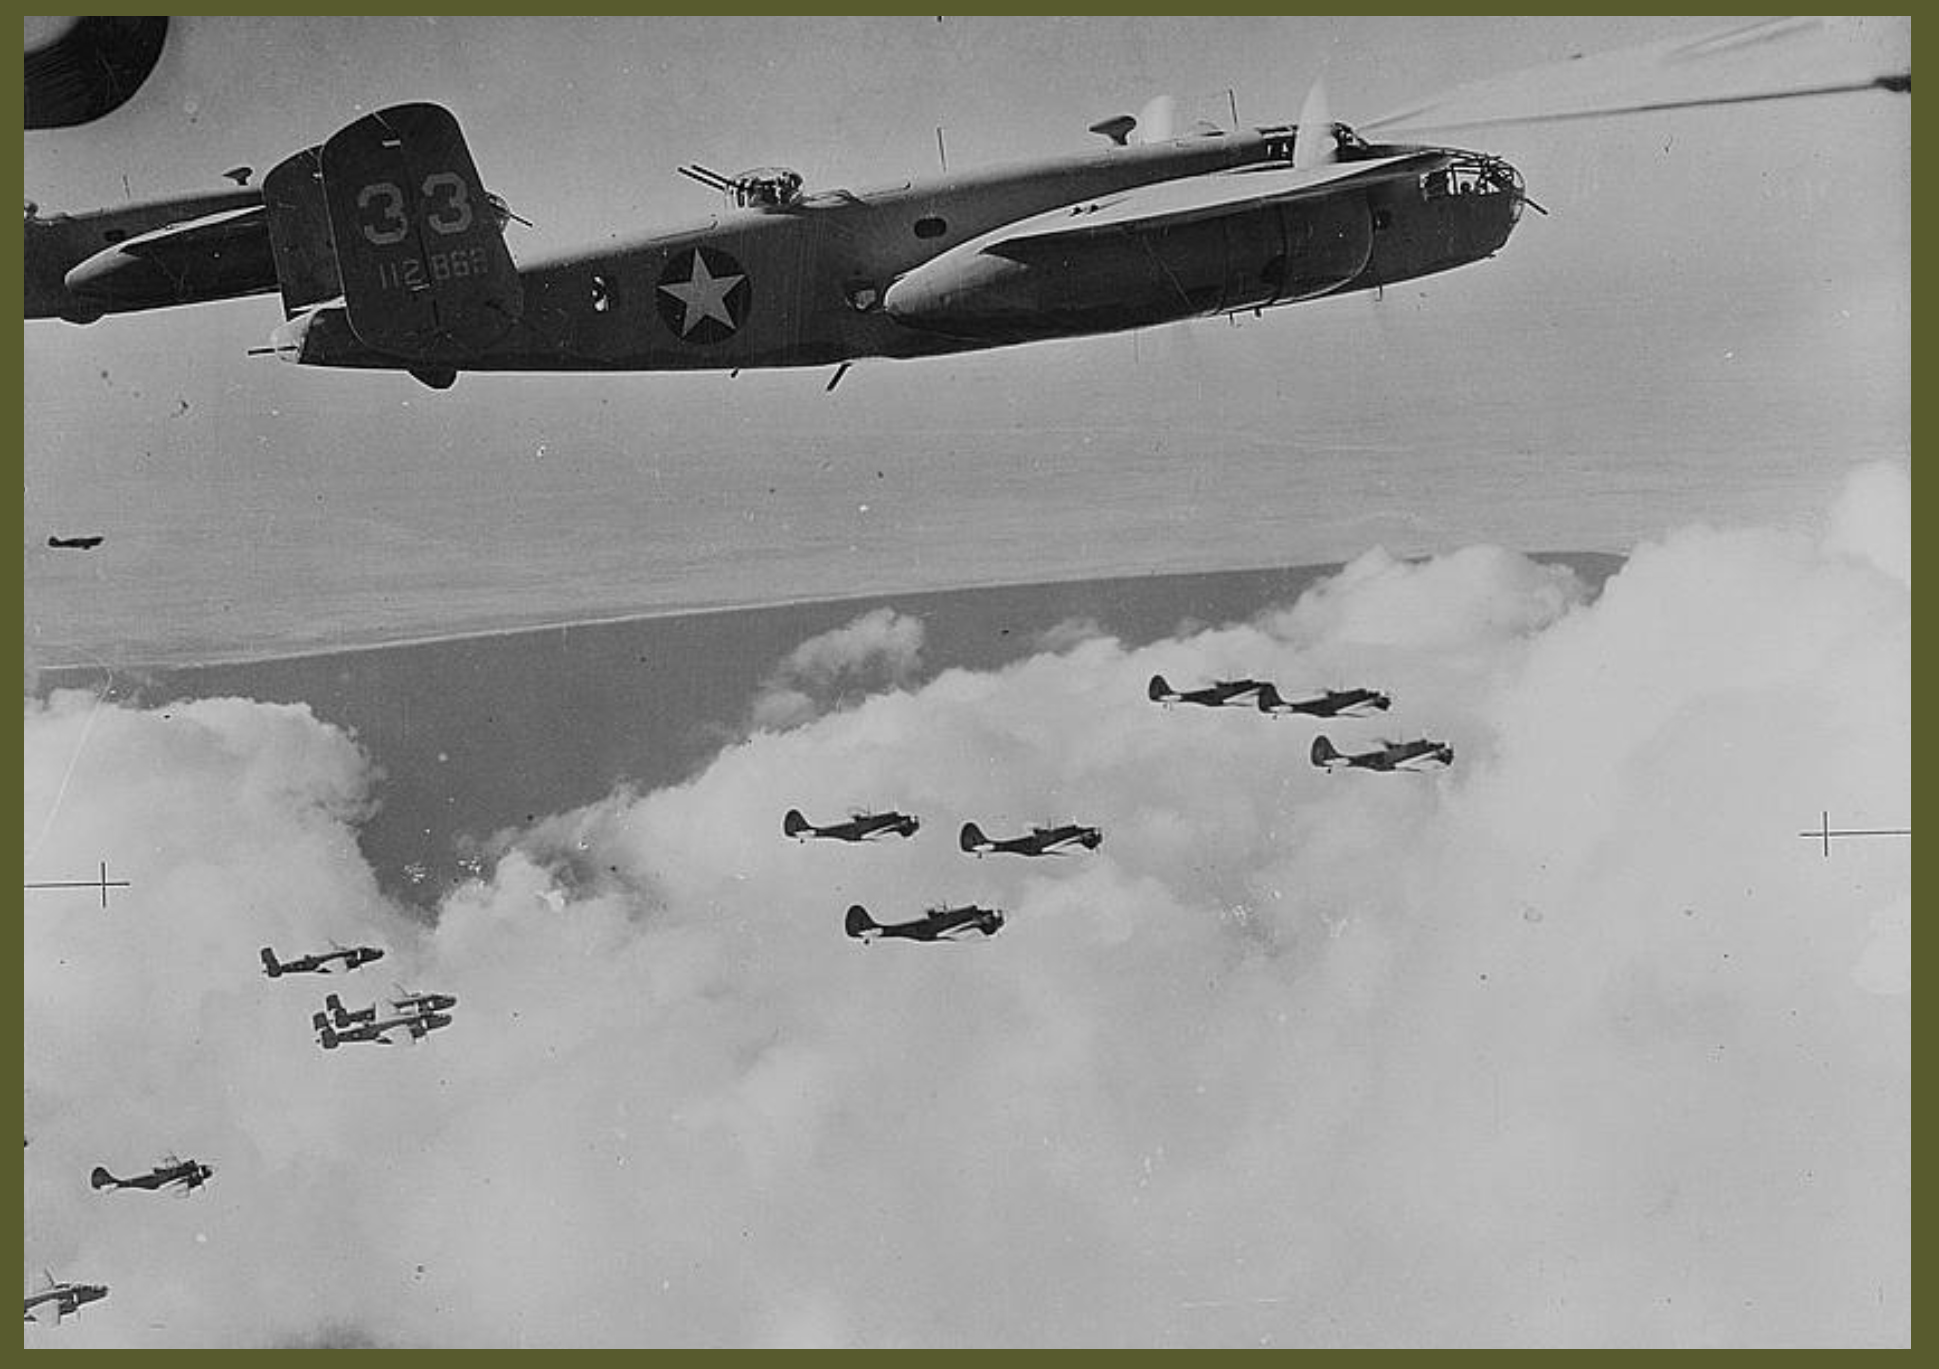 Mitchell B026 bombers of the United States Army Air Forces and Baltimore bombers of the South African air forces flying together in formation on their way to attack Rommels position in North Africa